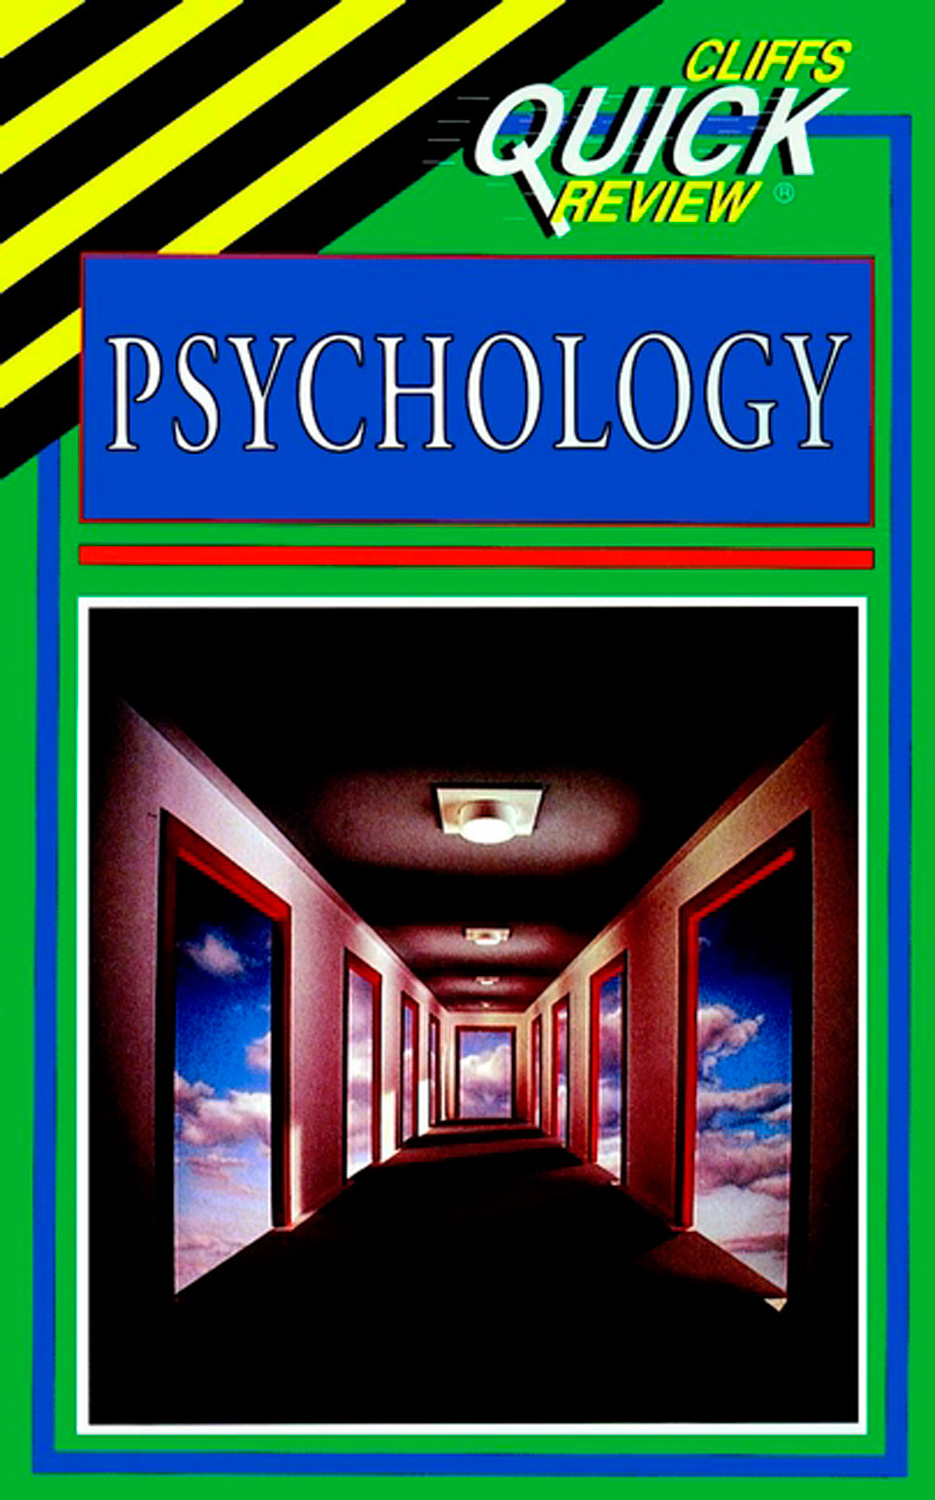 CliffsQuickReview Psychology-9780822053279